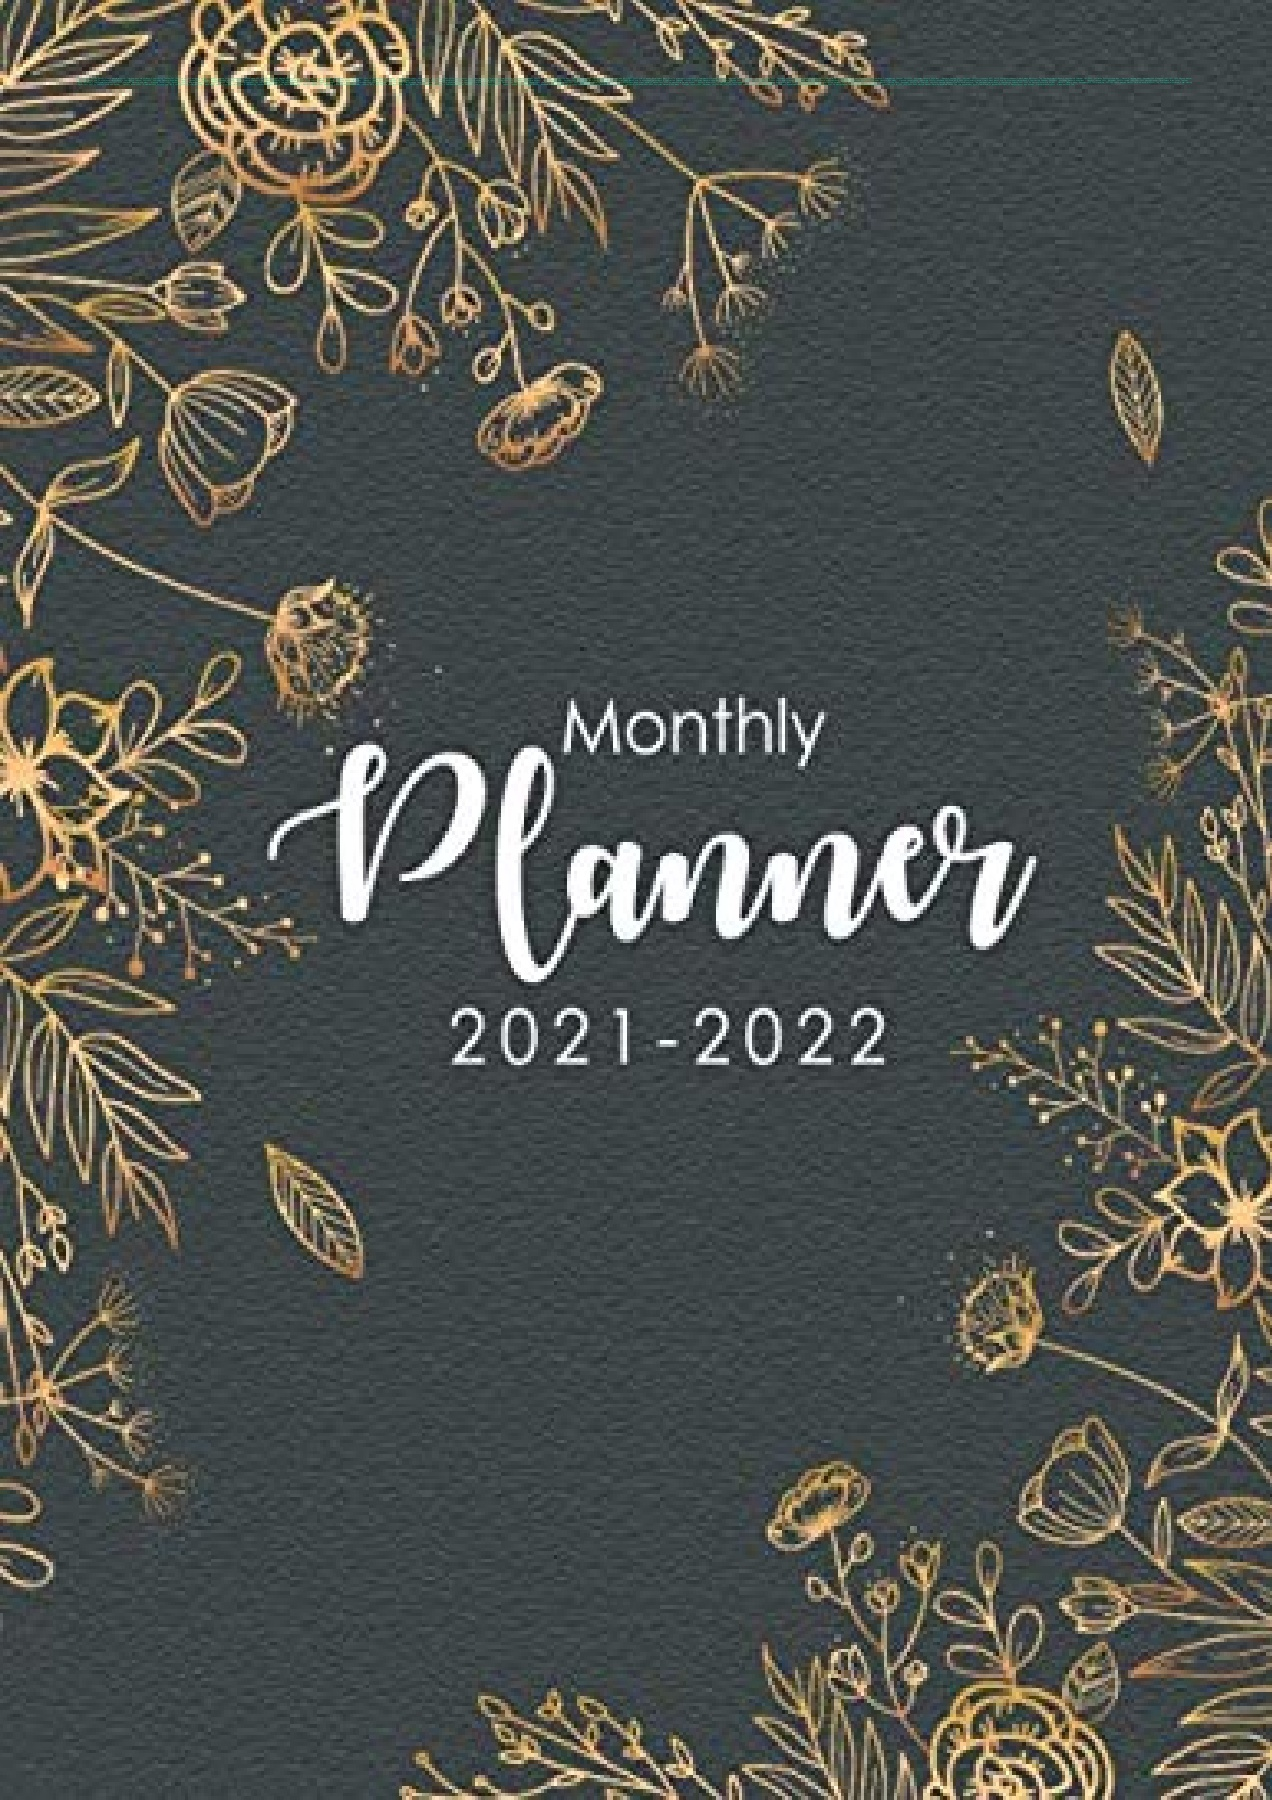 Ou Calendar 2022.Pdf 2021 2022 Monthly Planner Floral Golden Black Cover Two Year Appointment Book 2 Year Monthly Calendar 2021 2022 24 Months Planner With Holiday Planners January 2021 December 2022 Full